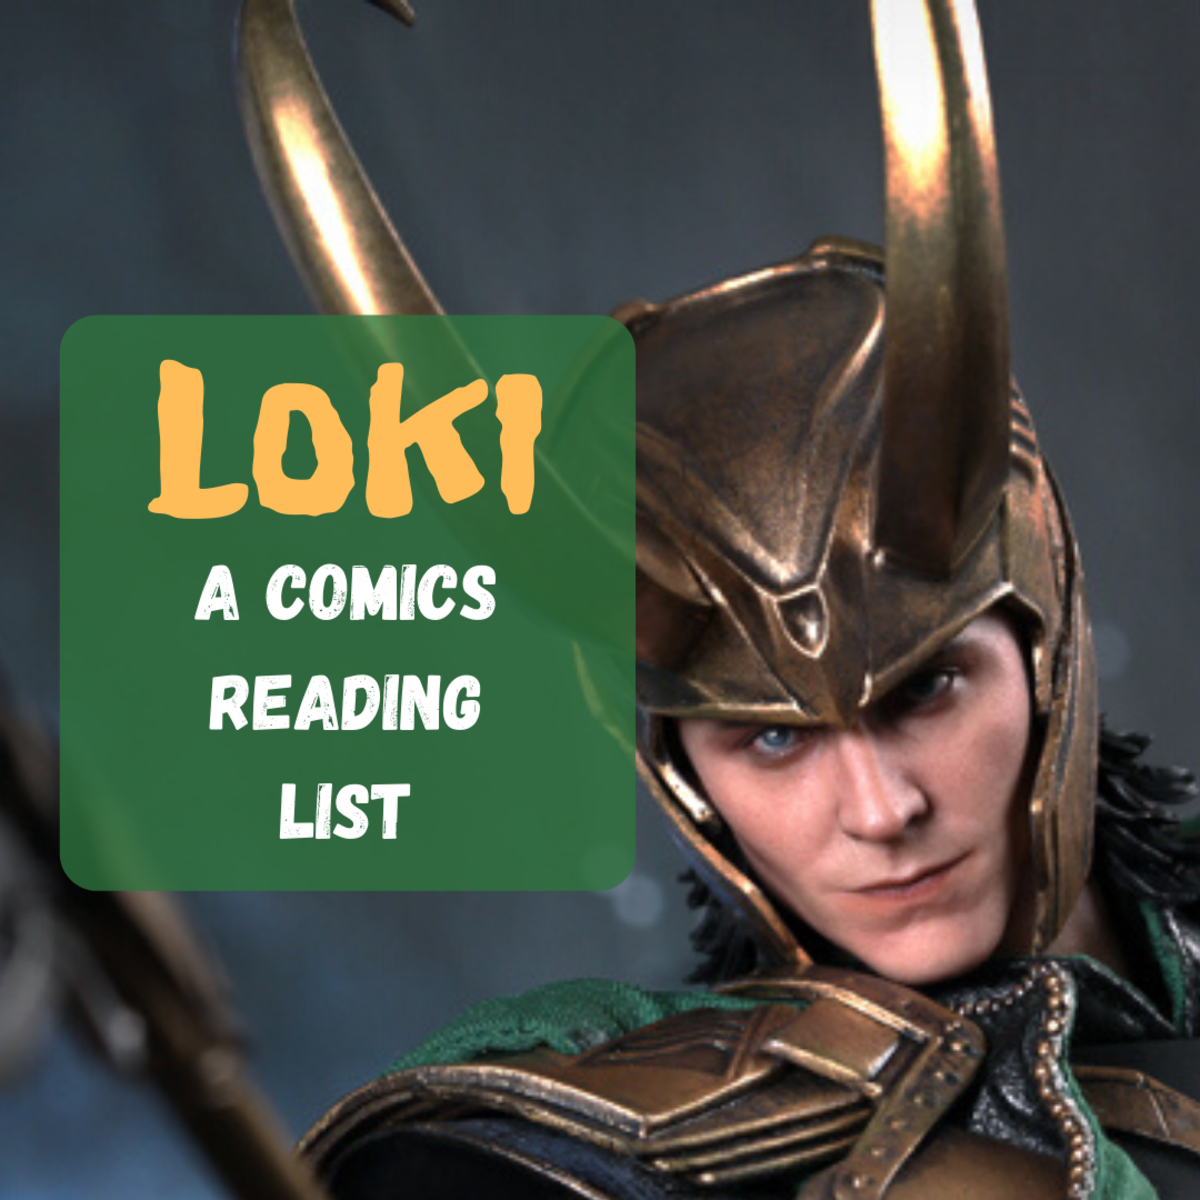 Marvel's Loki: A Comic Book Reading List for Beginners